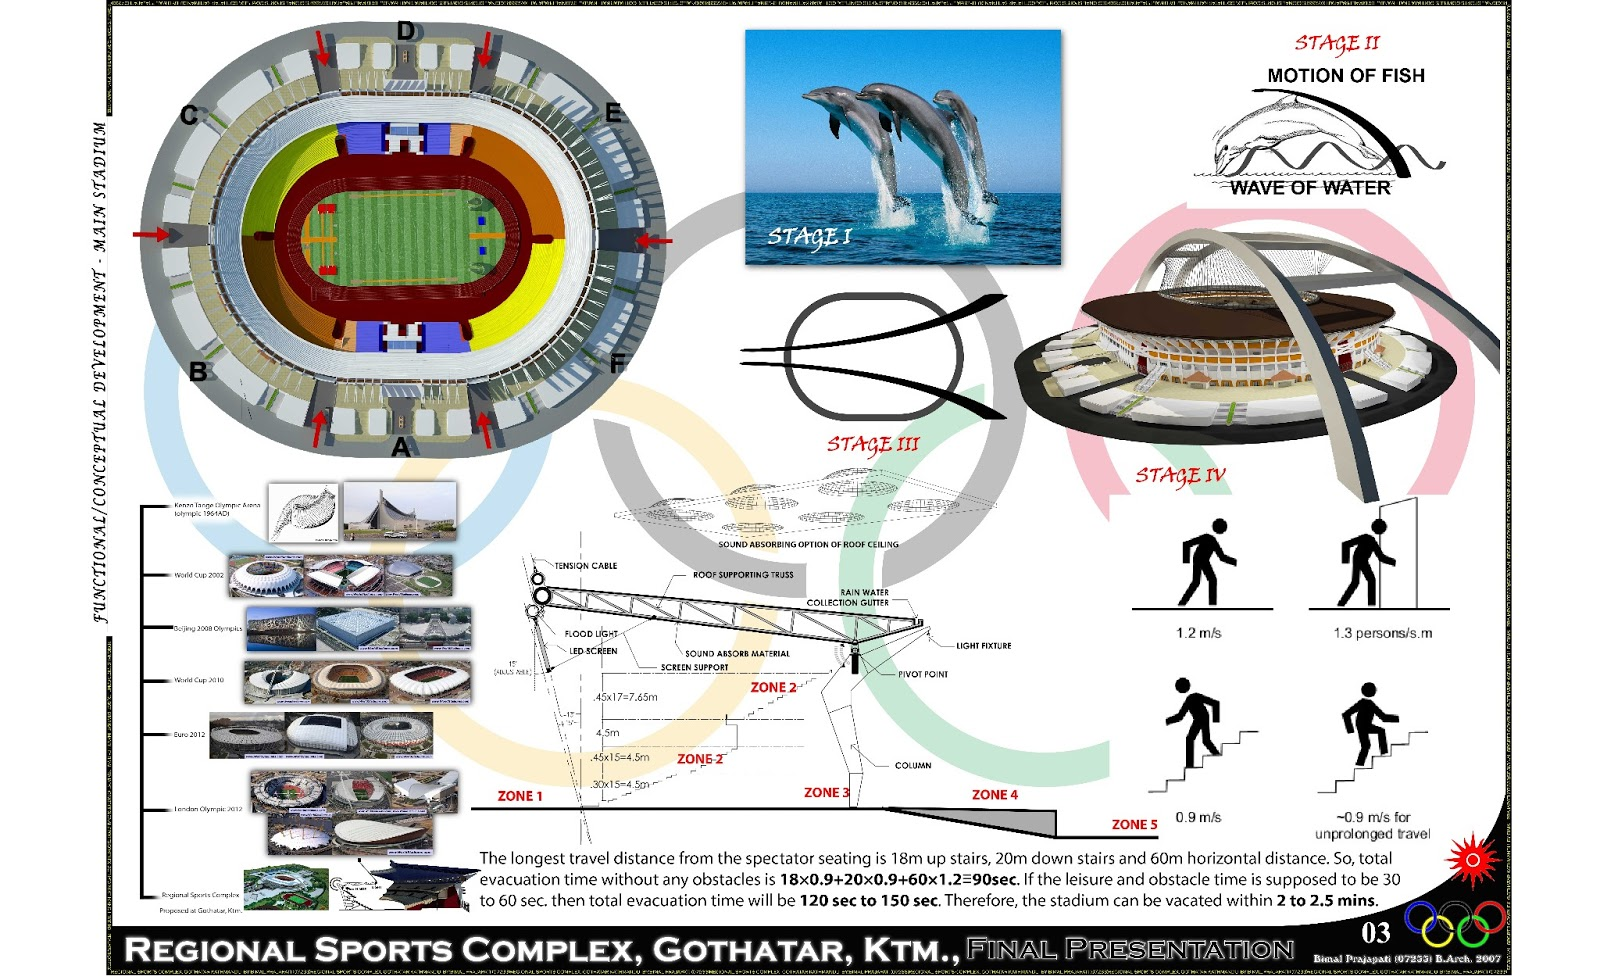 thesis on sports complex Get an answer for 'what are the disadvantages and advantages of sports(eg fame/overcompetitiveness) please list examples and detailed explaination tooif you could please also included useful website that i can refer too' and find homework help for other social sciences questions at enotes.